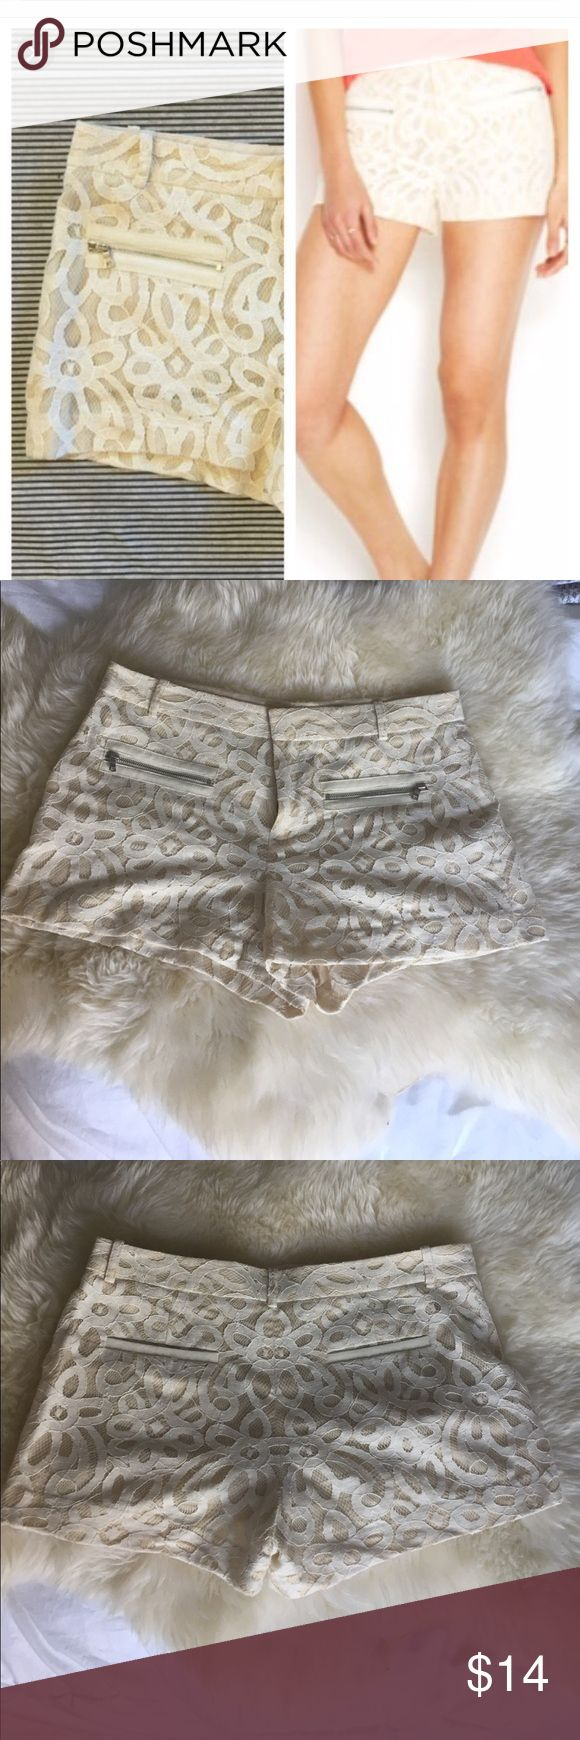 Rachel Roy cream lace shorts Dressy lace shorts by Rachel Roy. Silver zip front pockets. EUC, worn once on vacation. Measures 12 inches long laying flat, 17 inches wide laying flat. RACHEL Rachel Roy Shorts